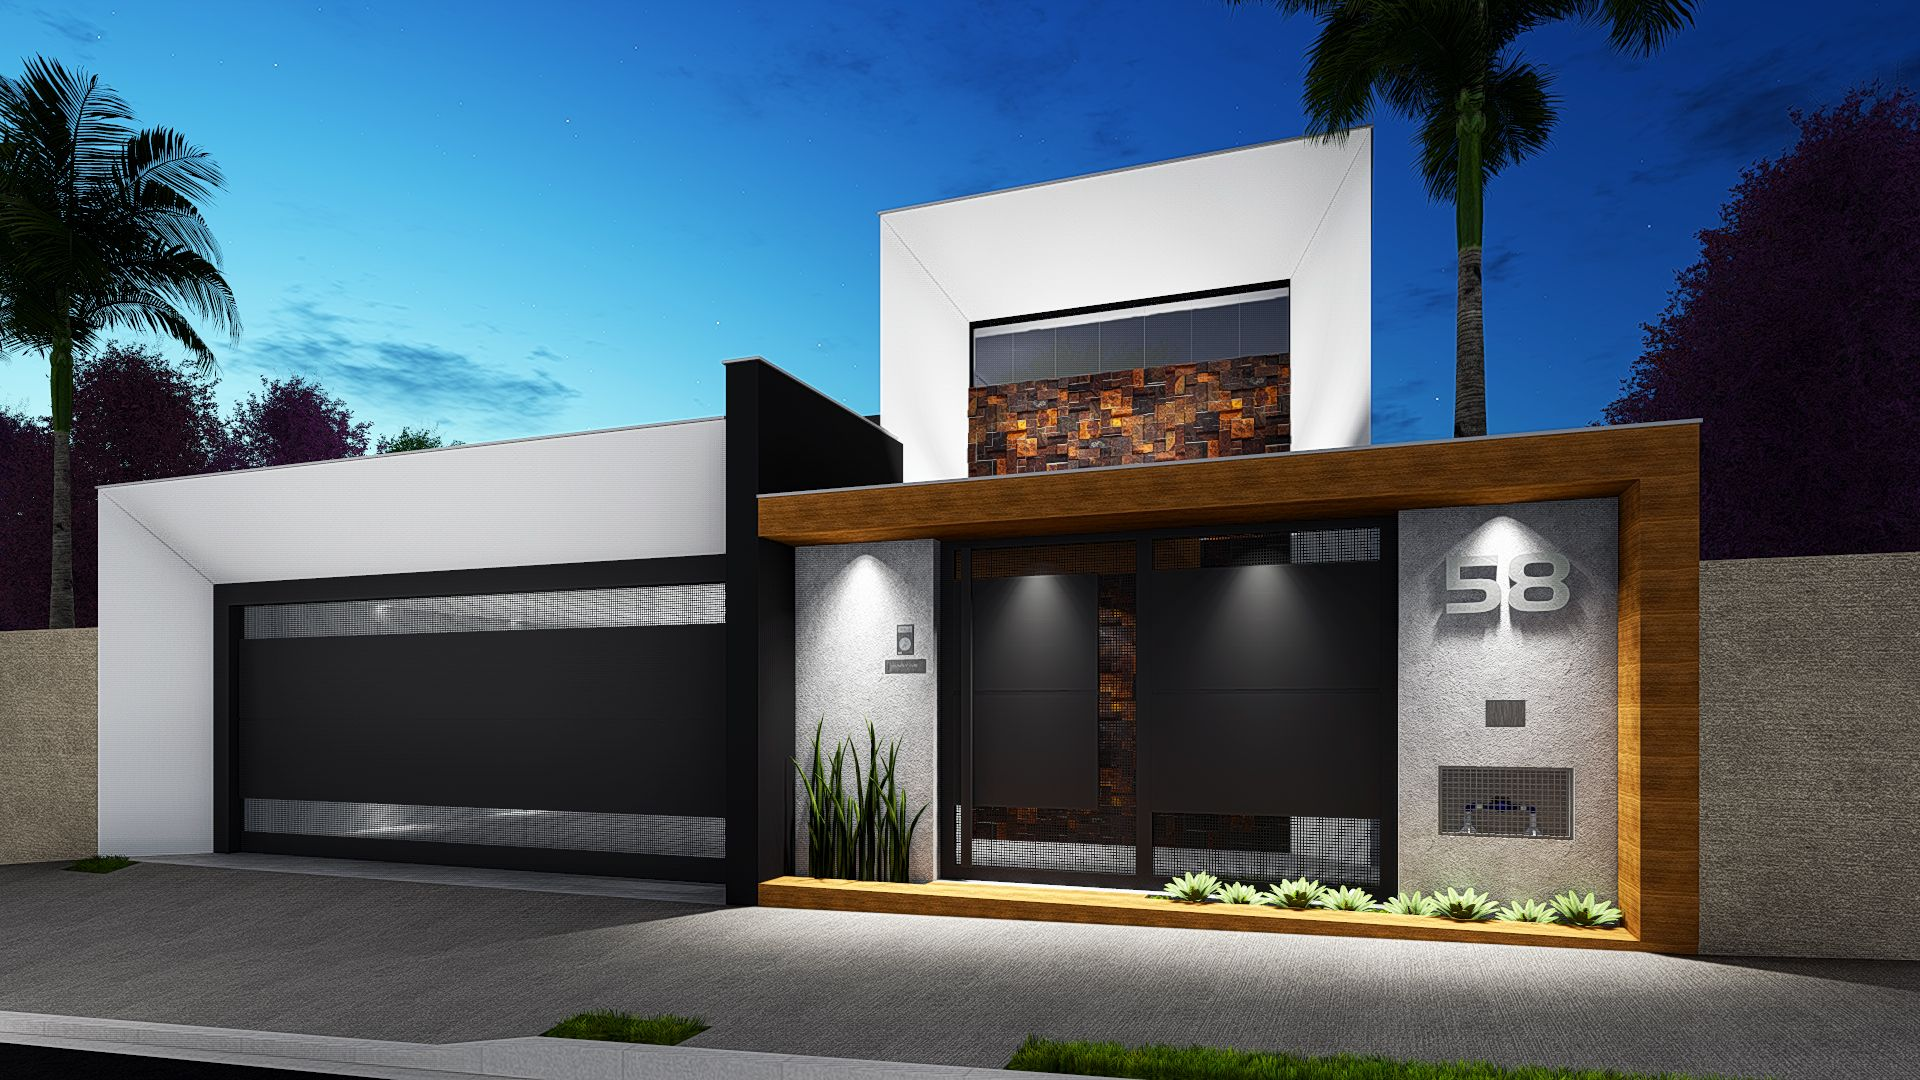 house number signs numbers amazing architecture modern architecture interiors exterior design contemporary homes architecture modern houses b7 modern